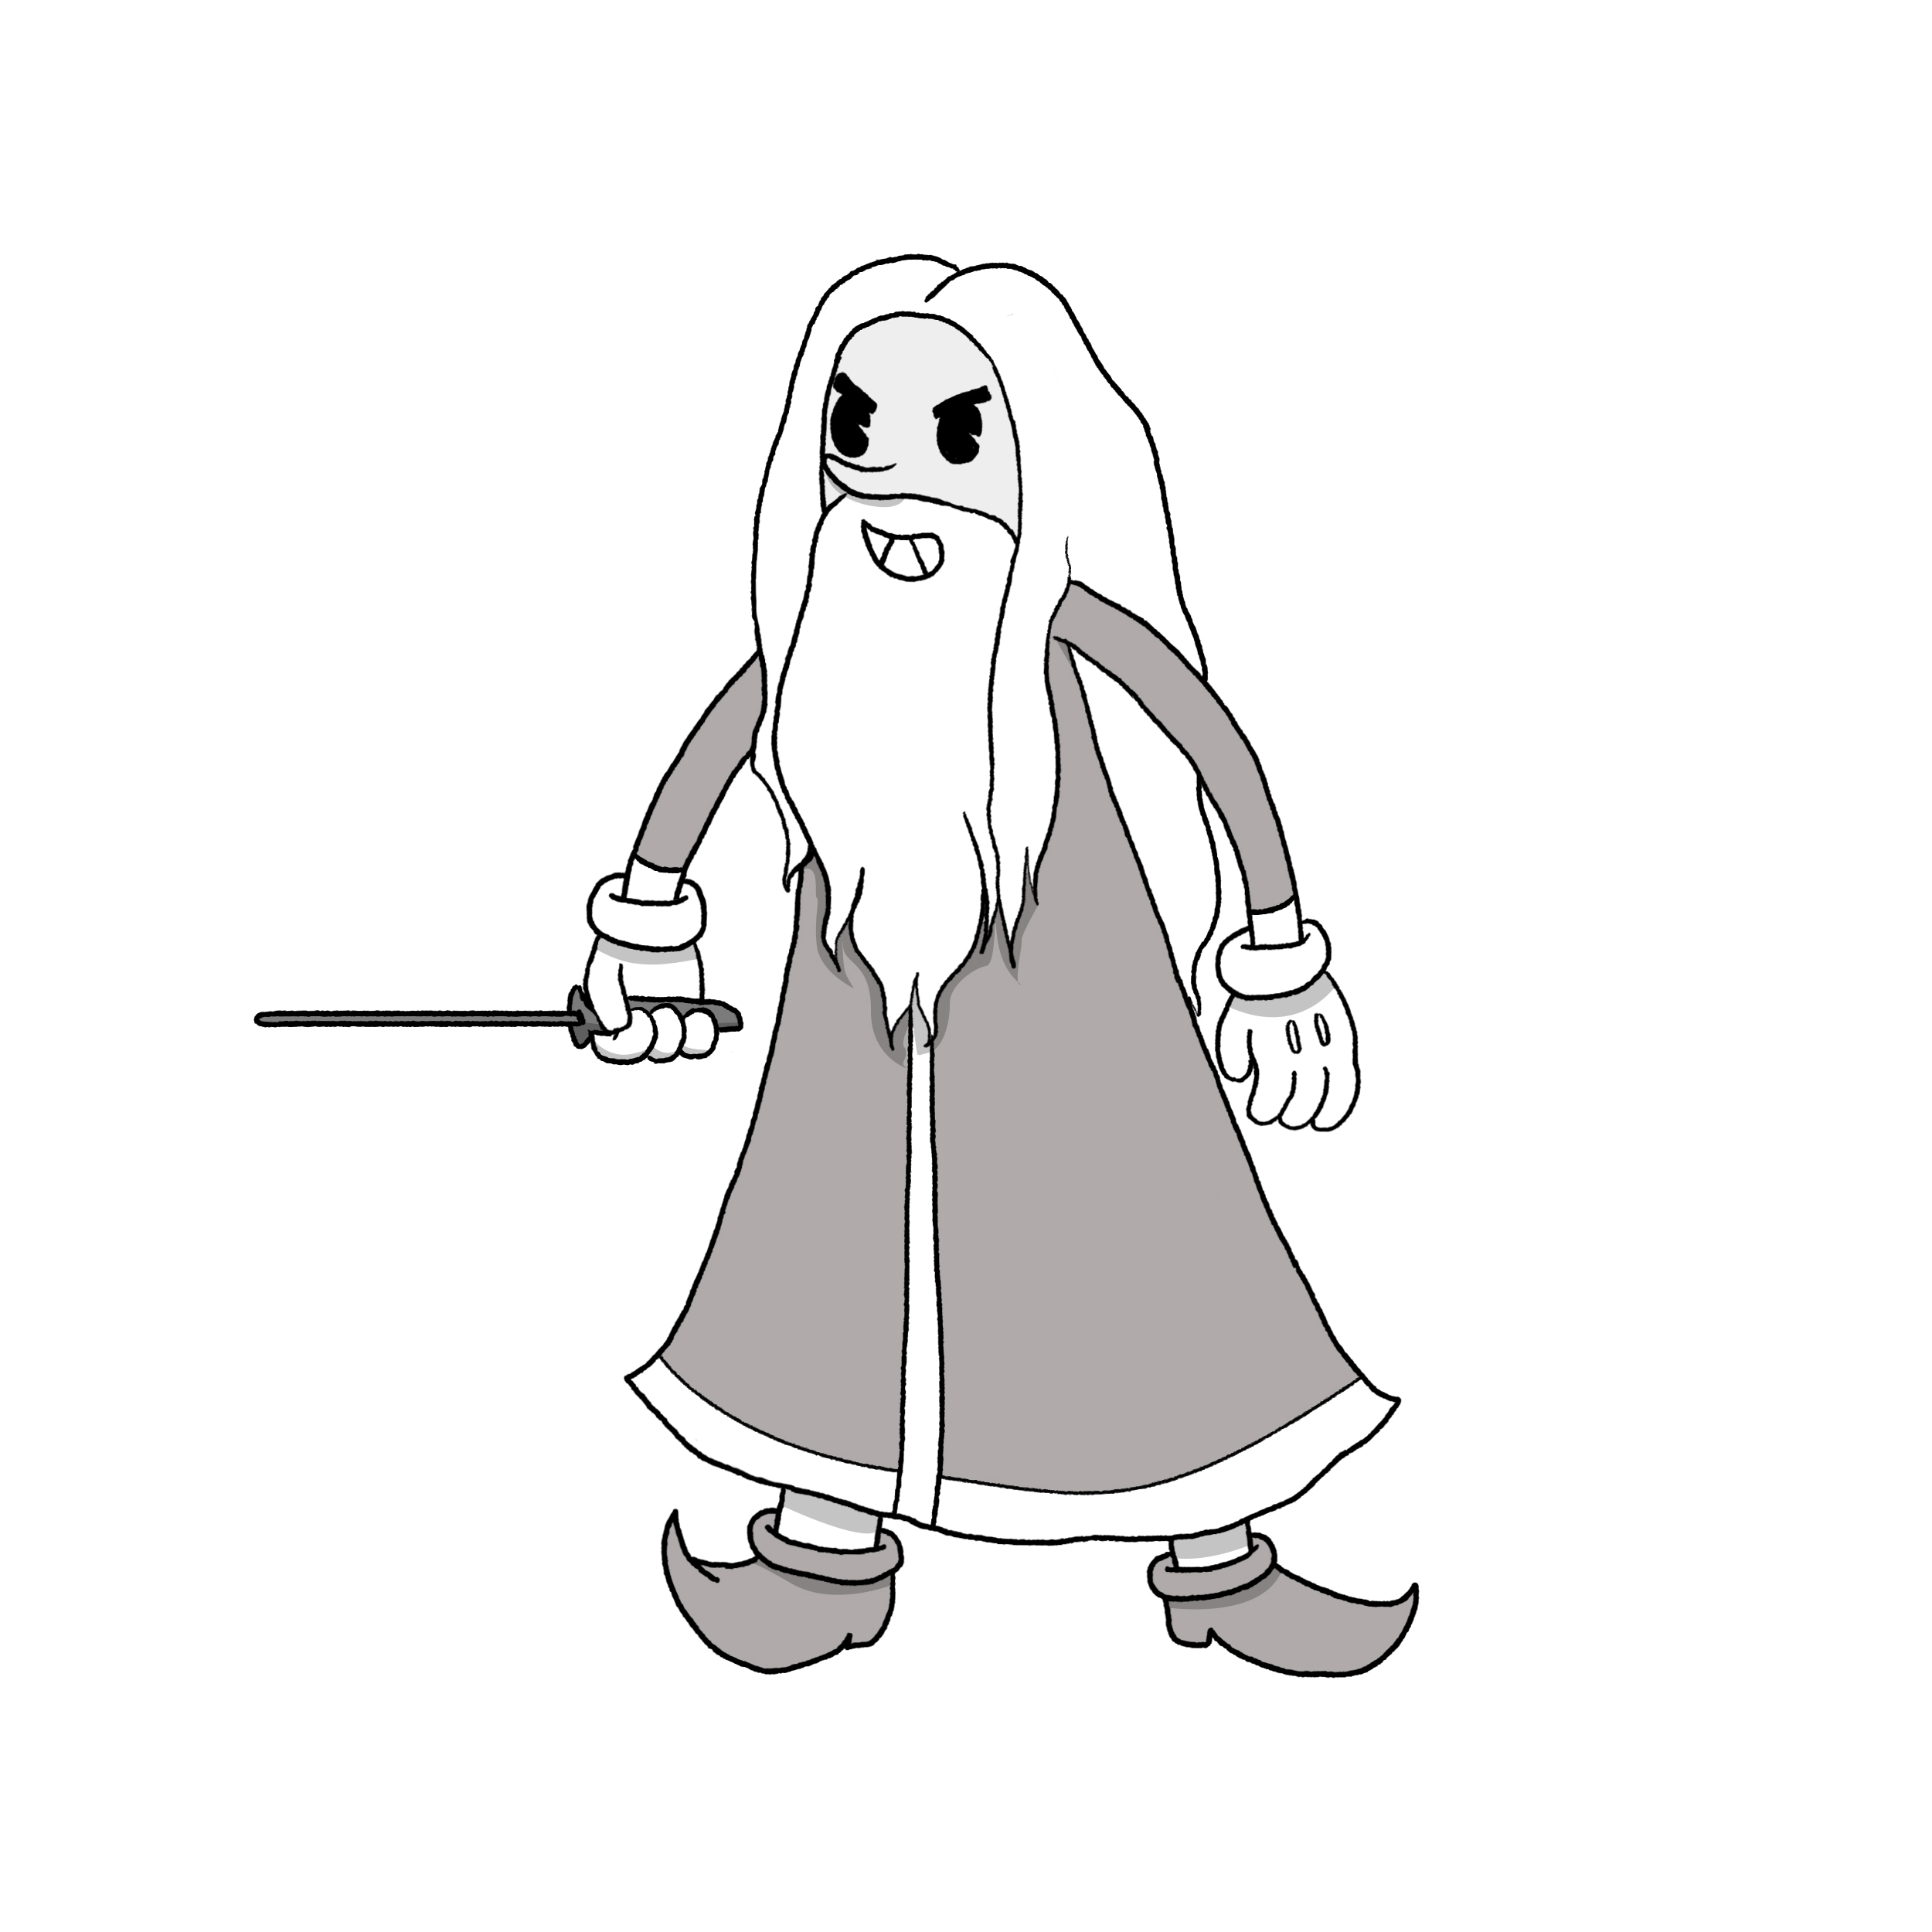 Wizard (1930s Style)